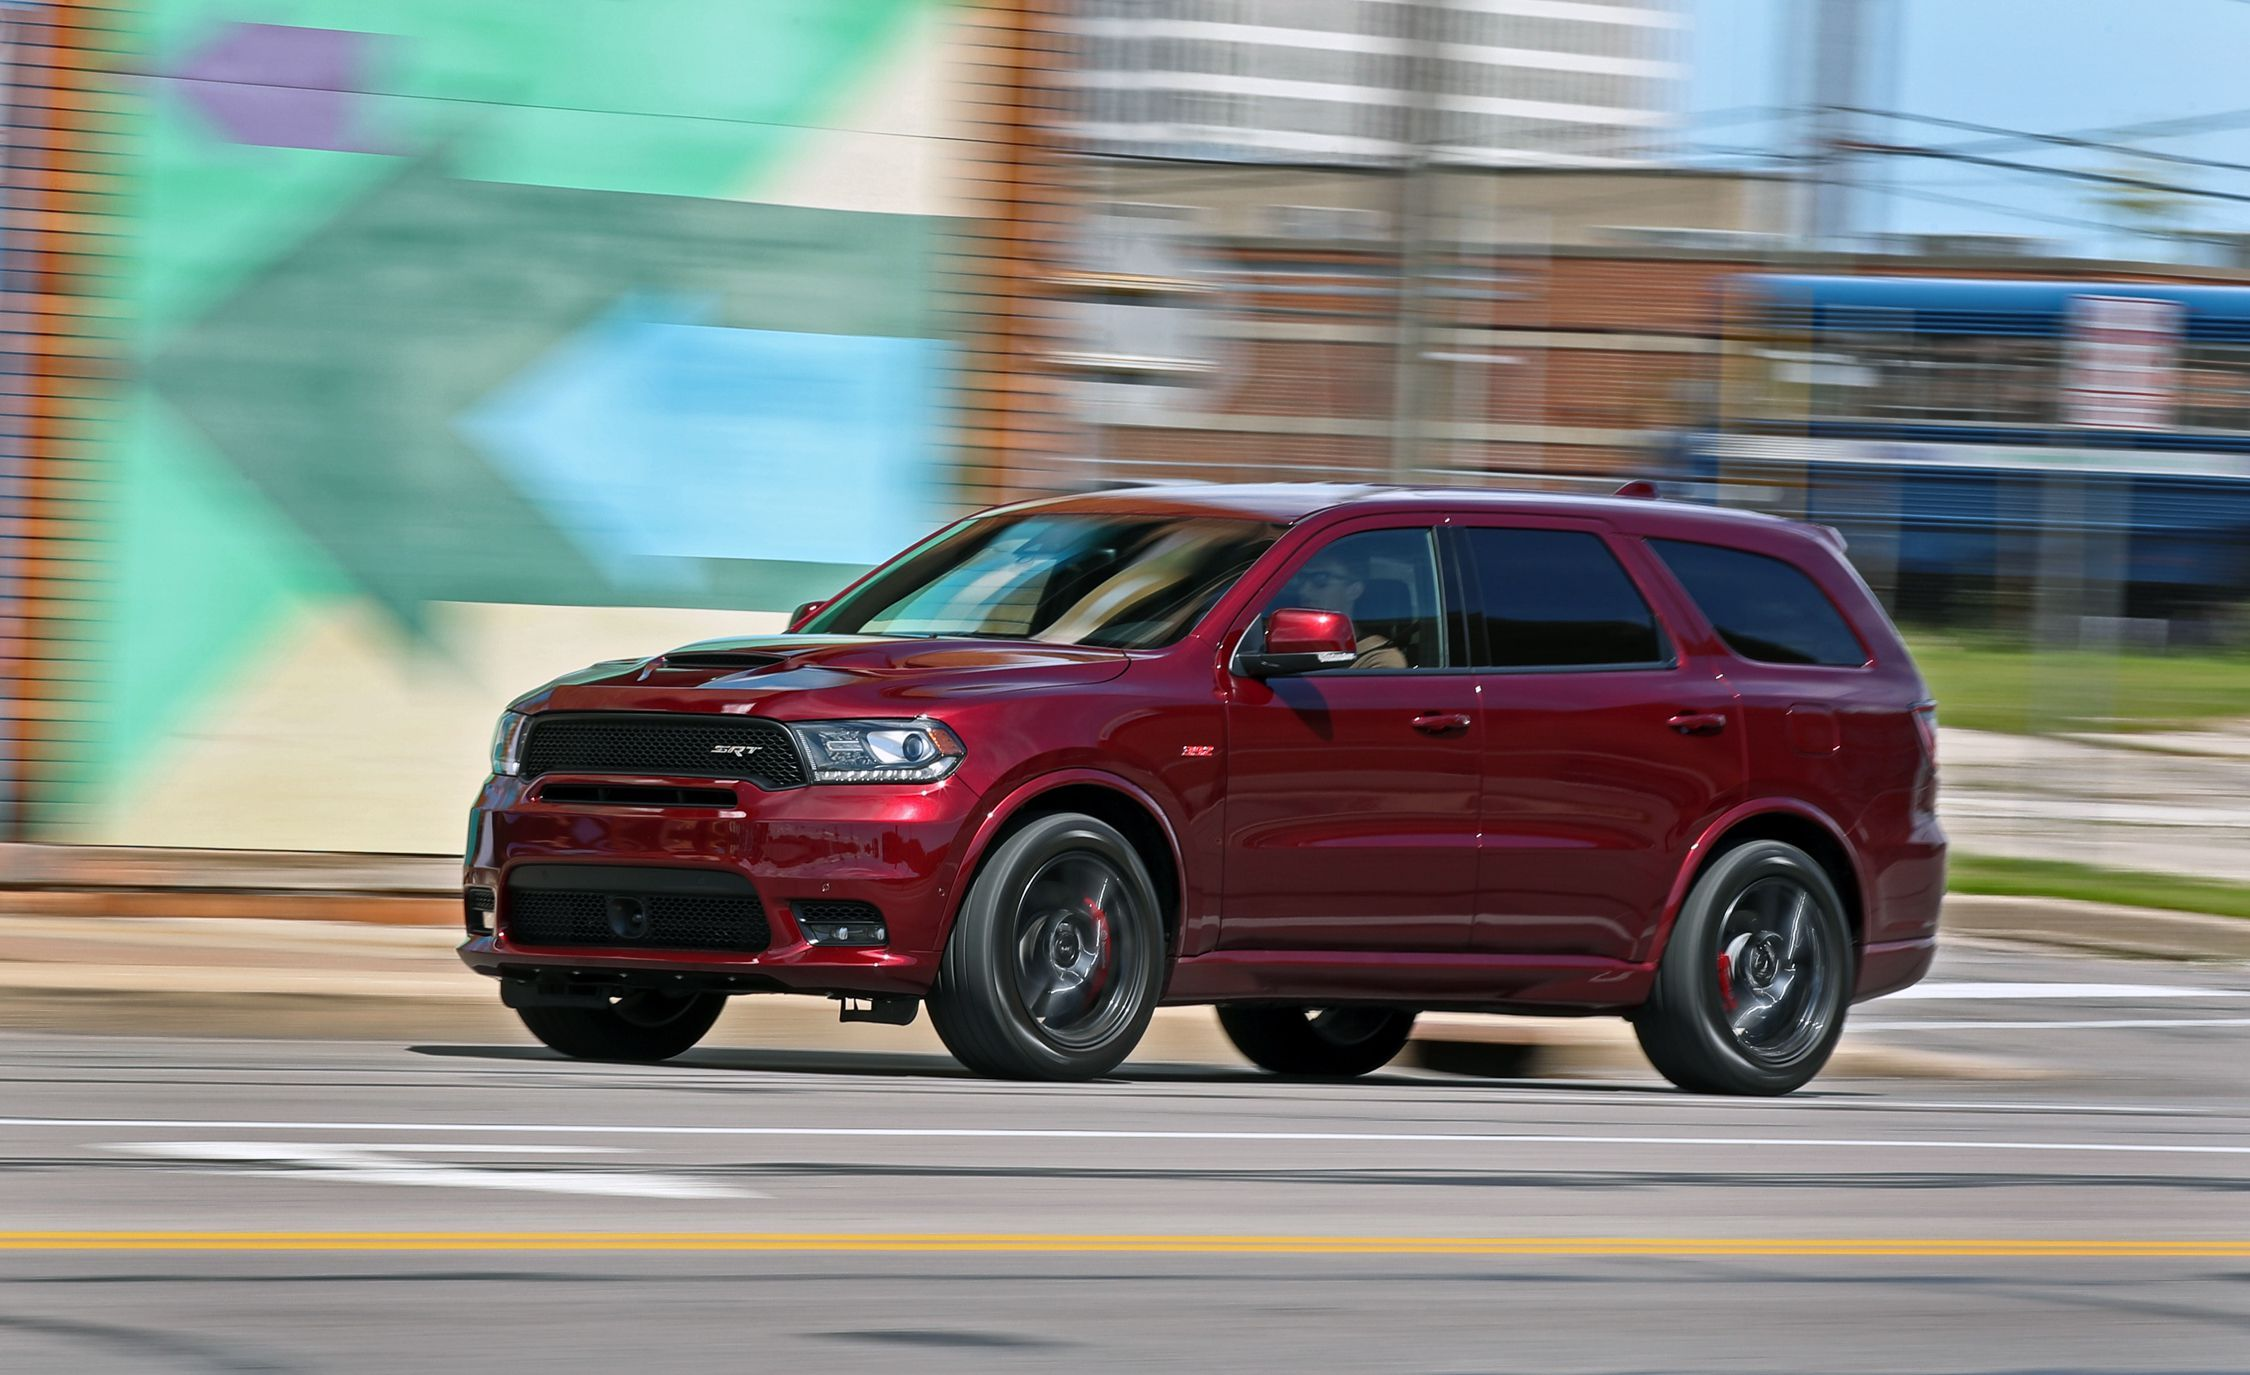 2019 Dodge Durango Srt Review Pricing And Specs